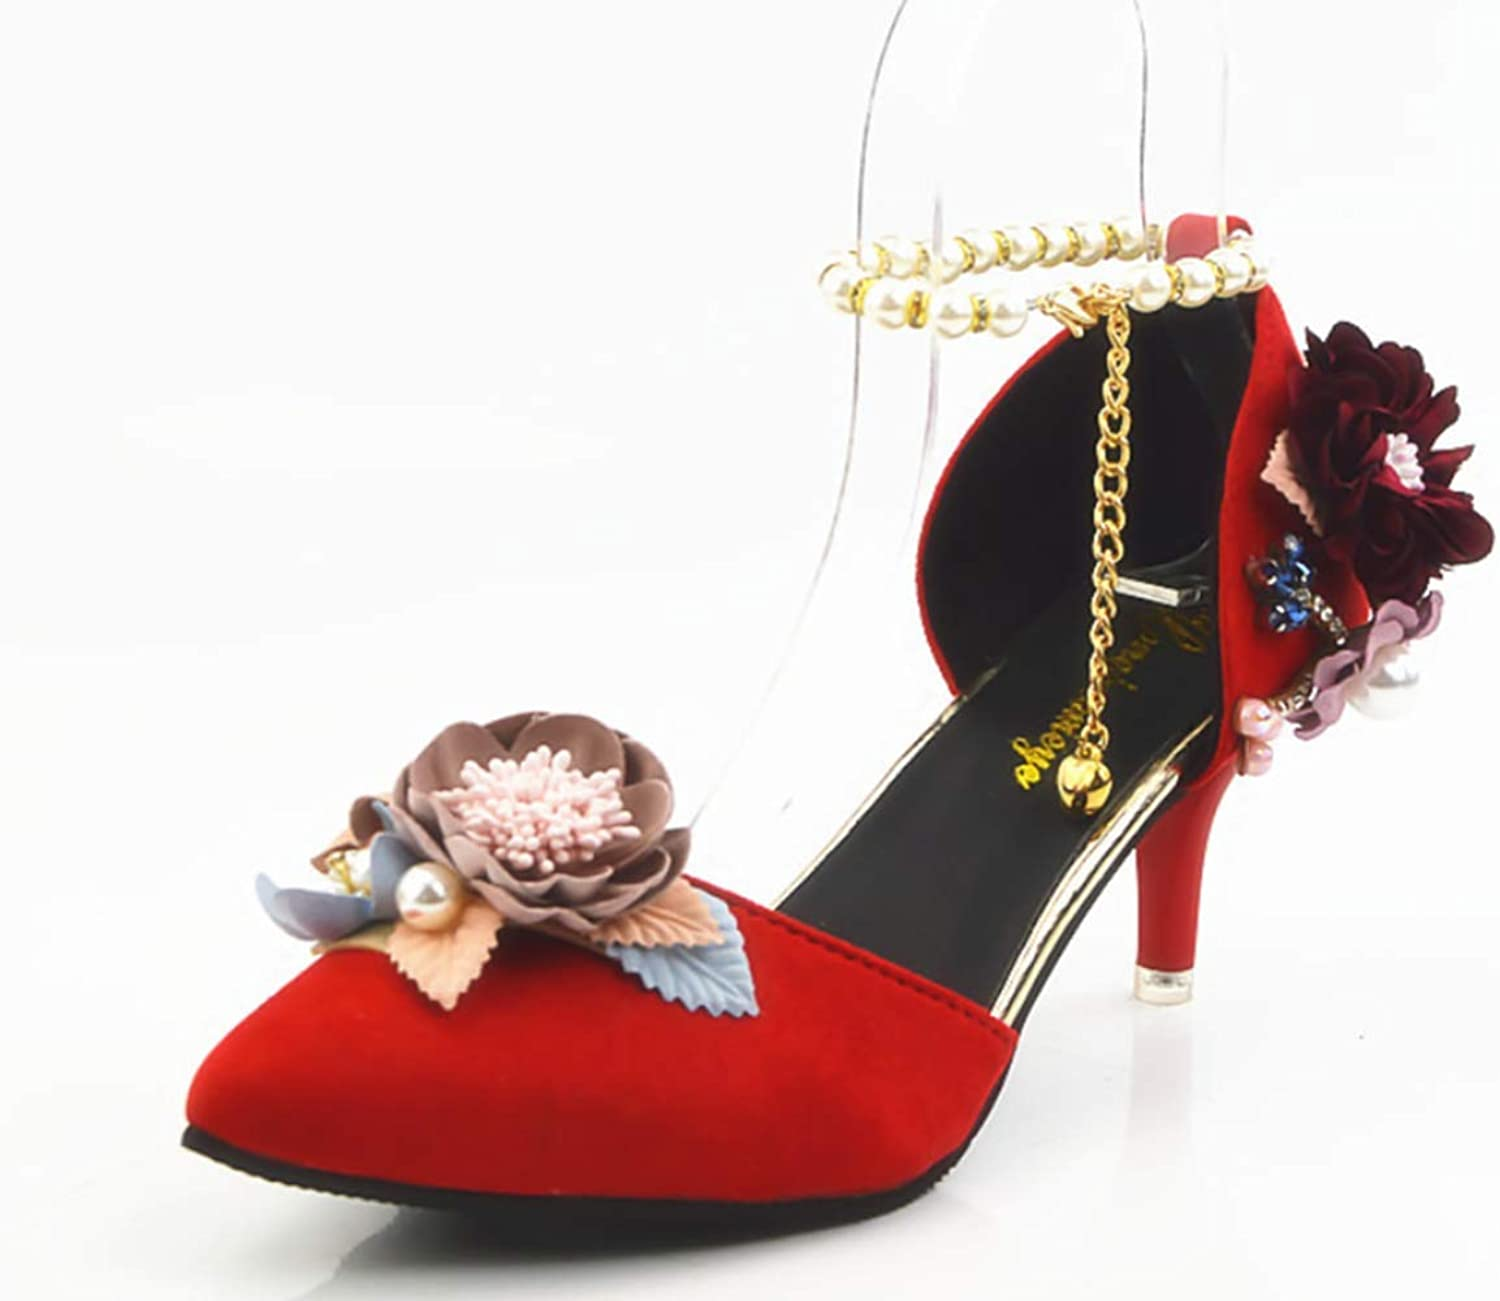 Shiney Women's Red High Heel Crystal shoes Pointed Rhinestones Handmade shoes Wedding Sandals Bridal shoes